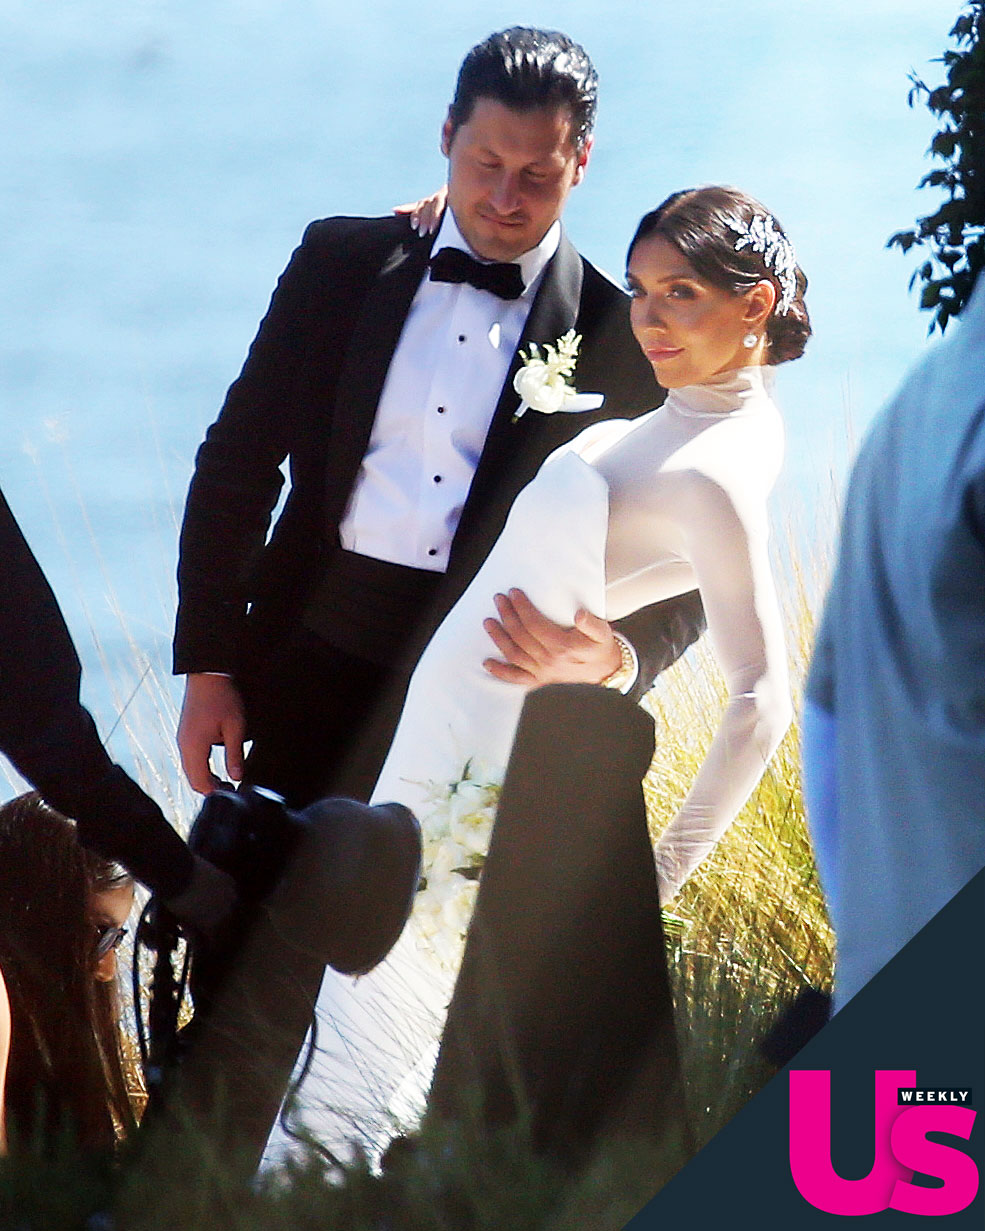 """Valentin-Chmerkovskiy-Jenna-Johnson-Wedding - The Dancing With the Stars pros tied the knot on the coast of Los Angeles on April 13. The Utah alum teared up as she told Chmerkovskiy, """"I promise to fulfill my duties as your wife."""""""